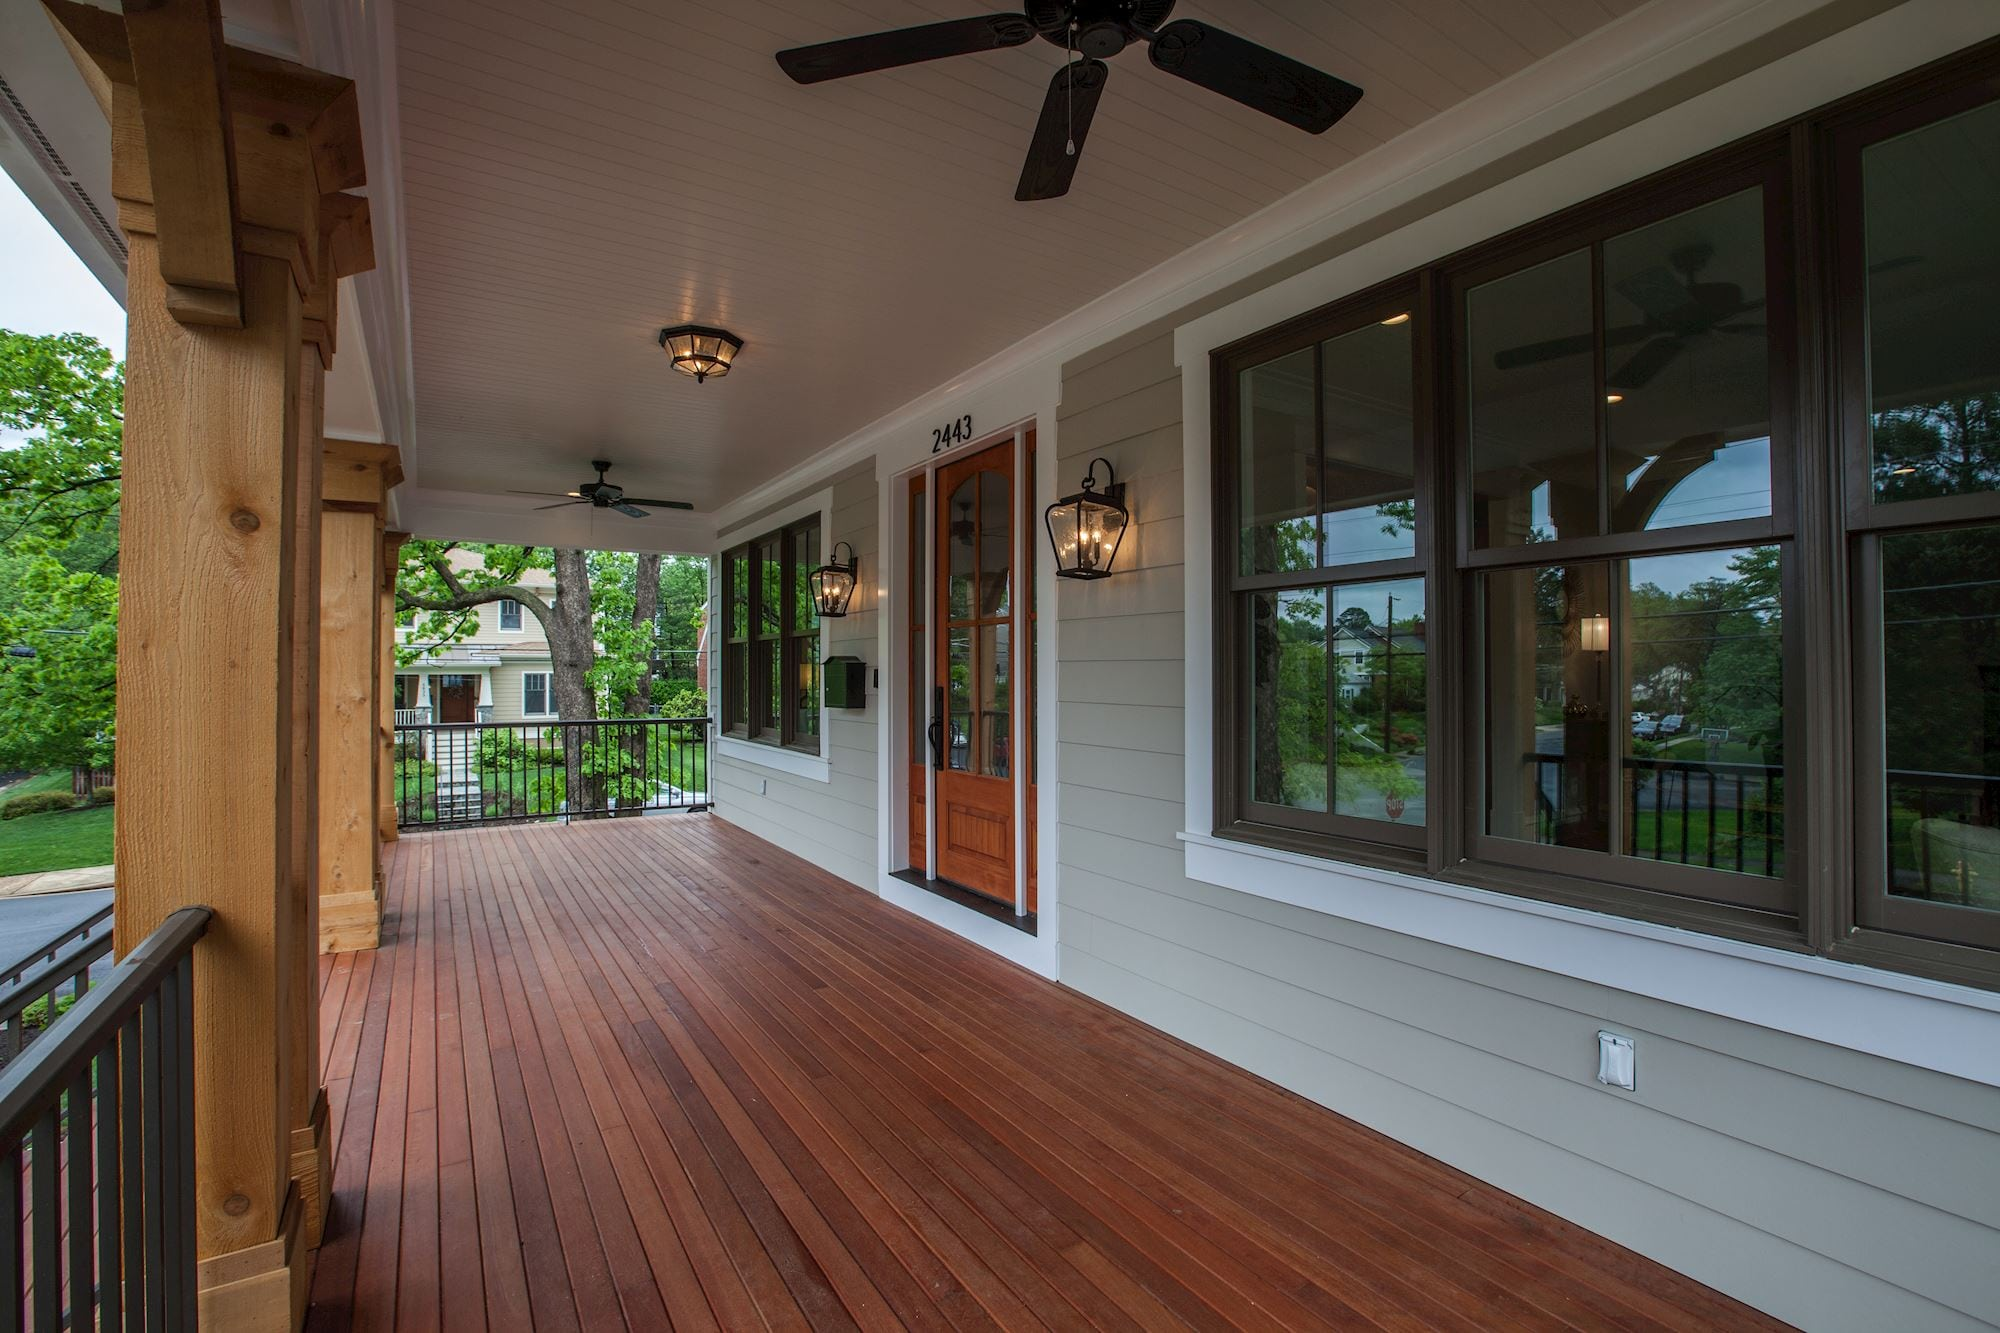 An inviting front door to greet guests or dine el fresco. Custom Home by Custom Builder, North Arlington, VA 22207